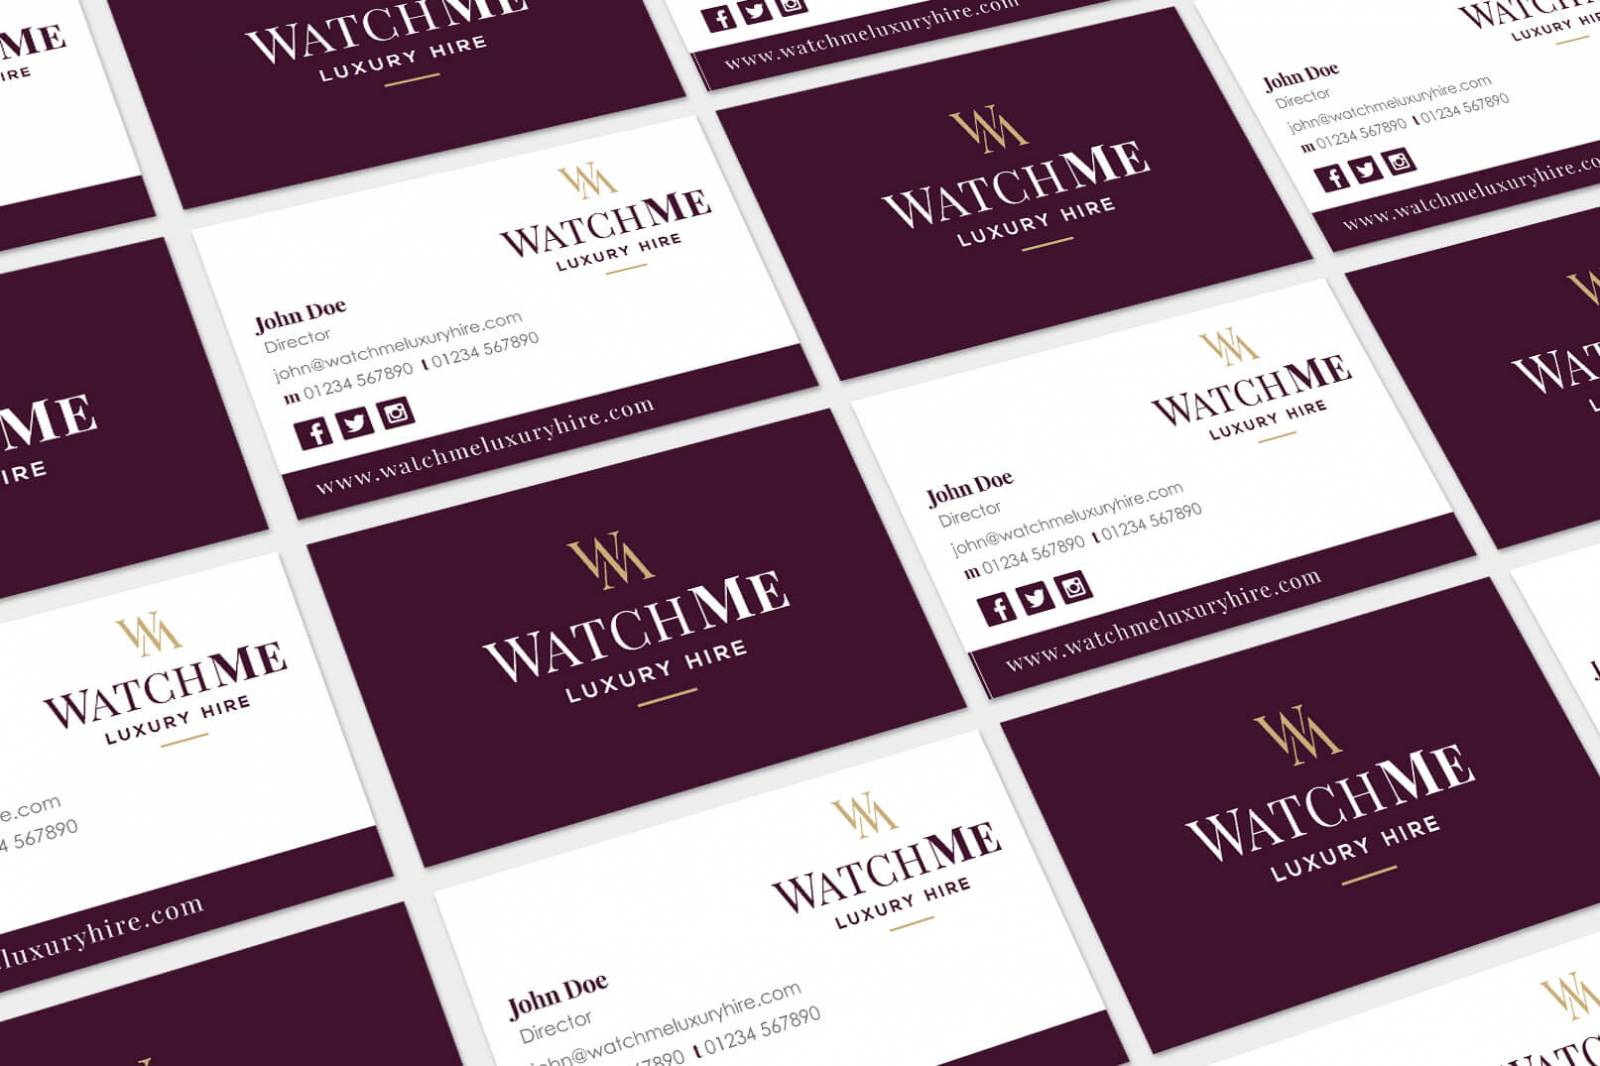 Watchme-business-card-design-agency-graphic-design-canterbury.jpg